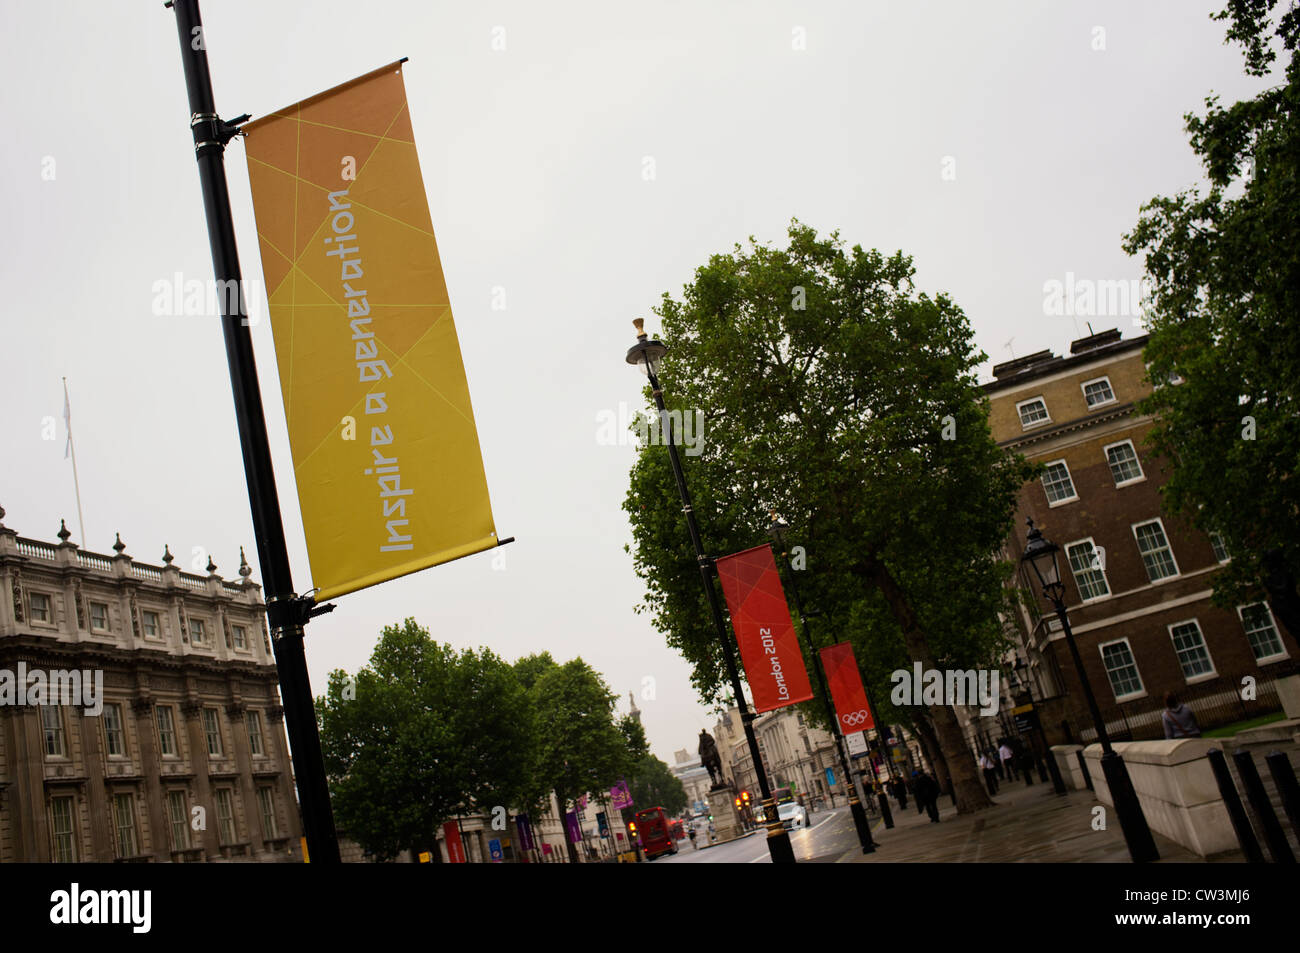 'Inspire a generation' sign in London - Stock Image